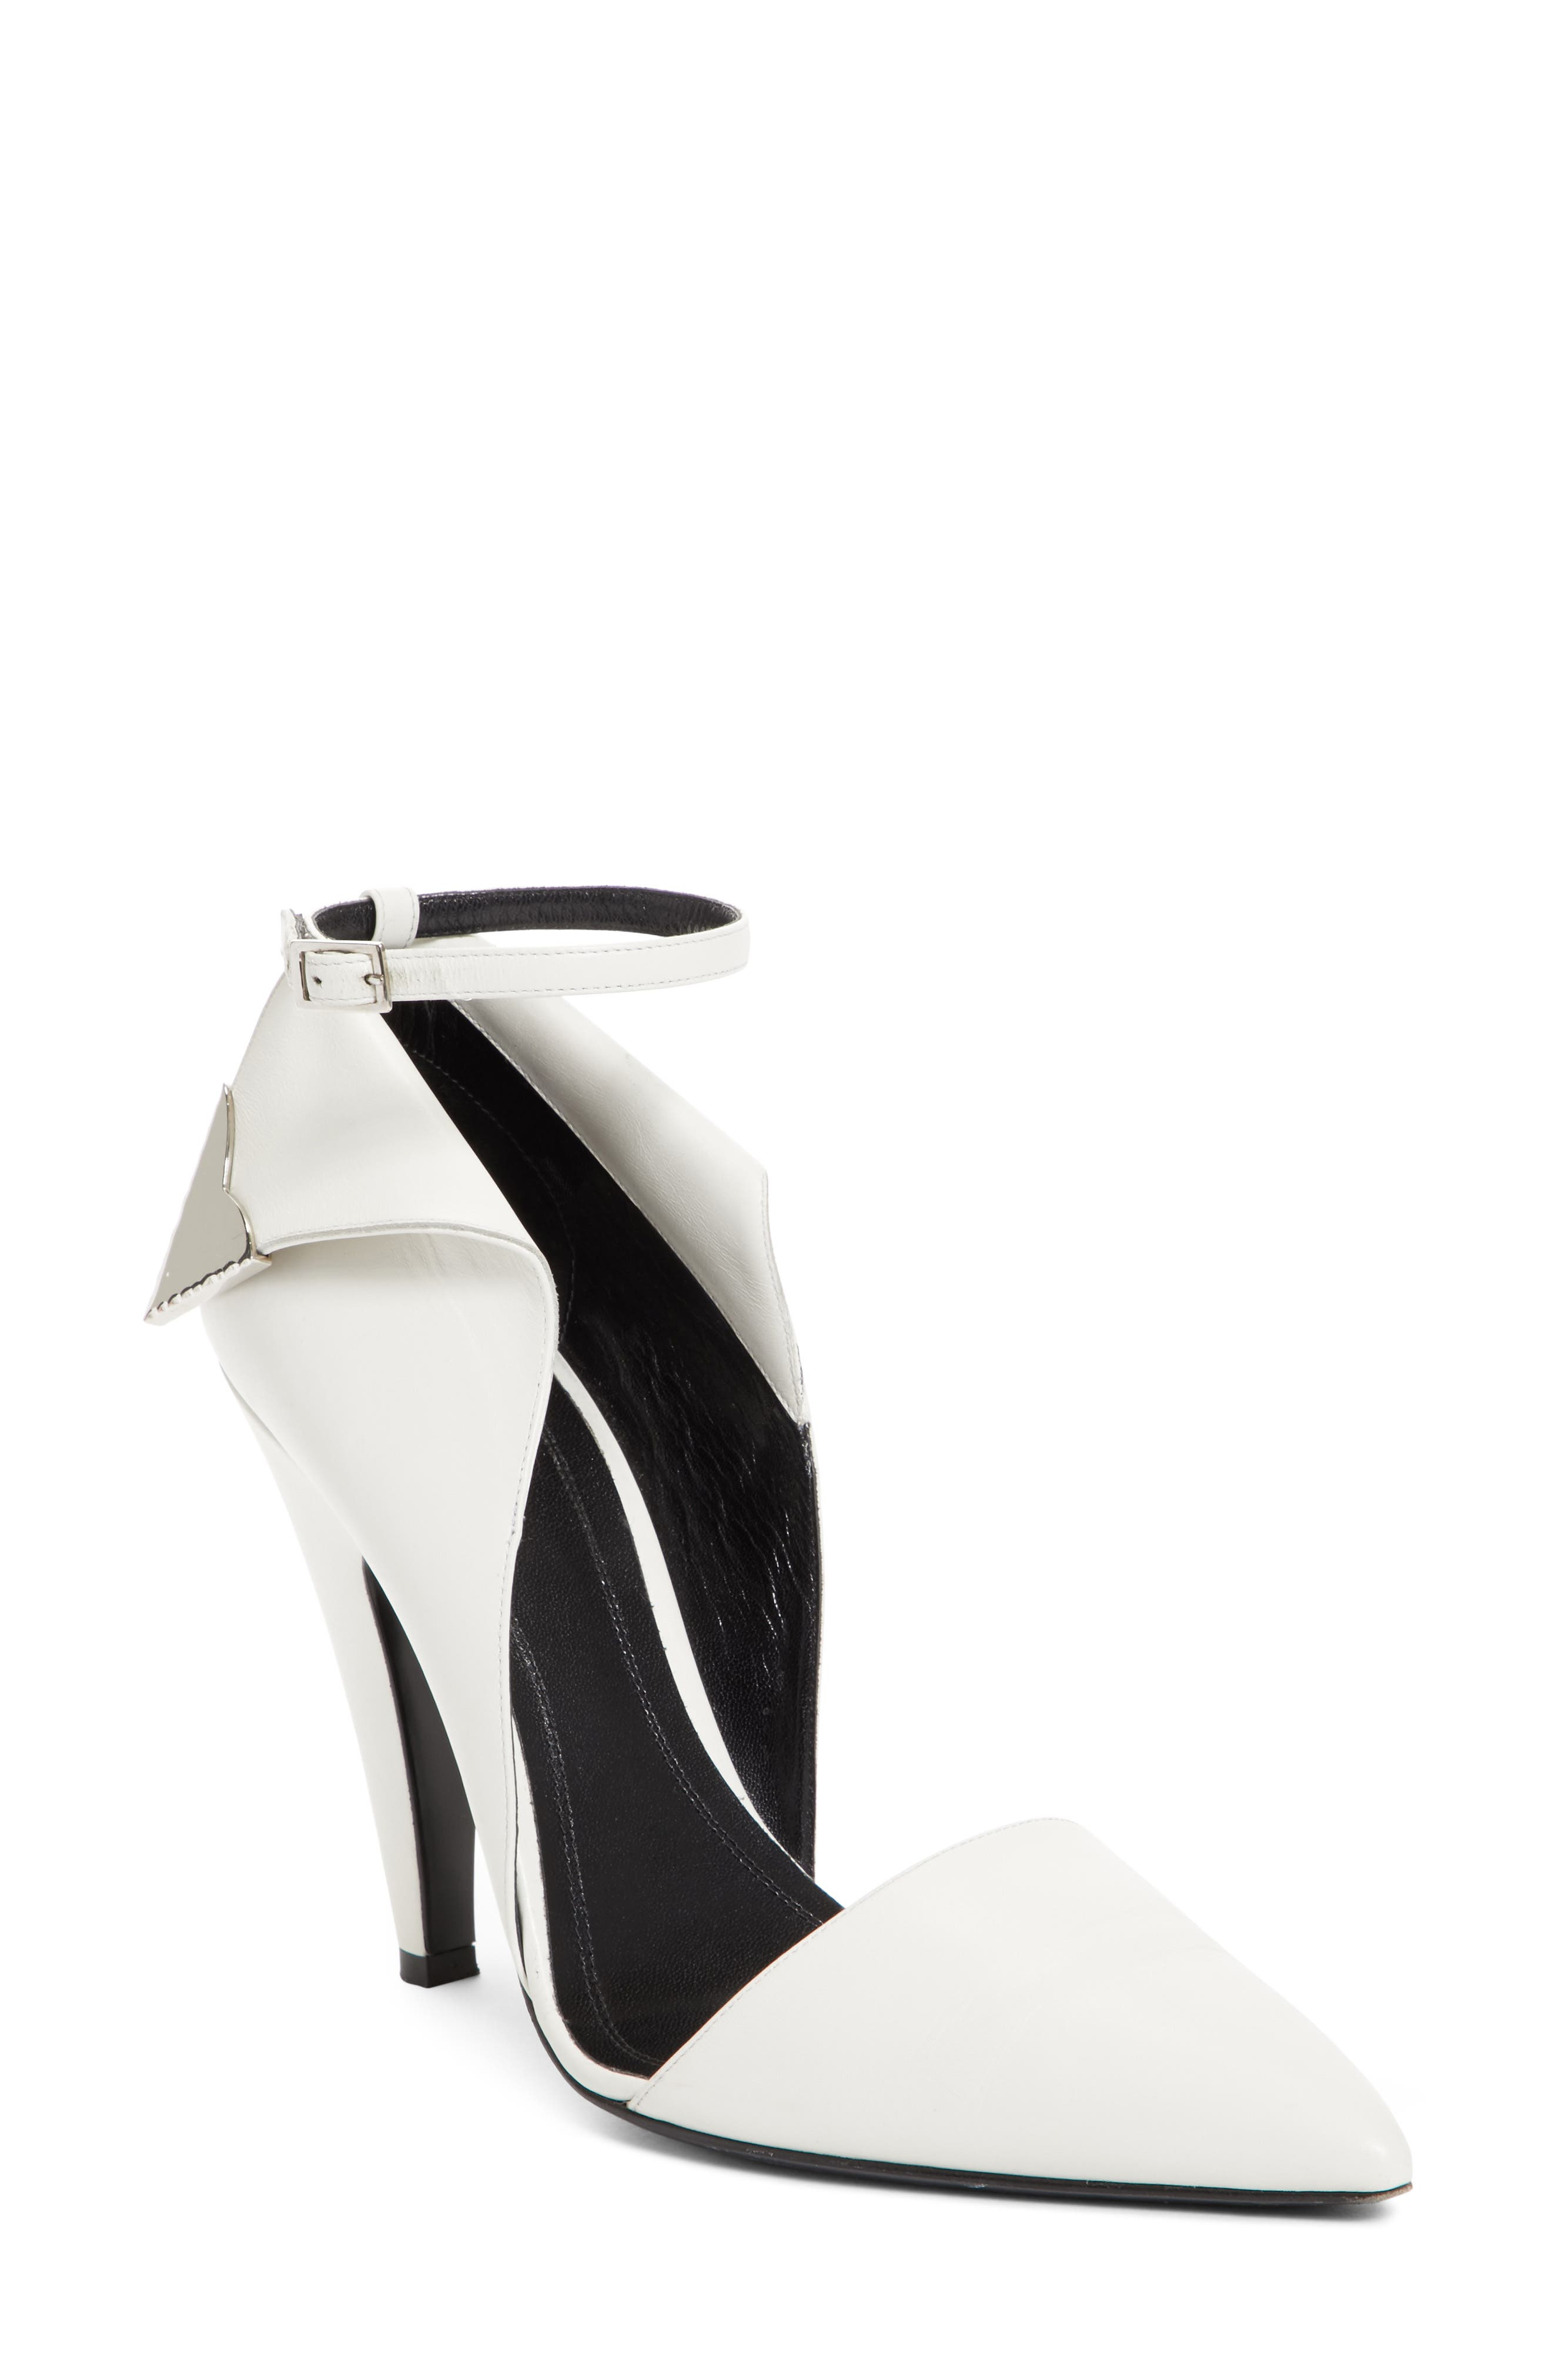 Kadence Ankle Strap Pump,                             Main thumbnail 1, color,                             100